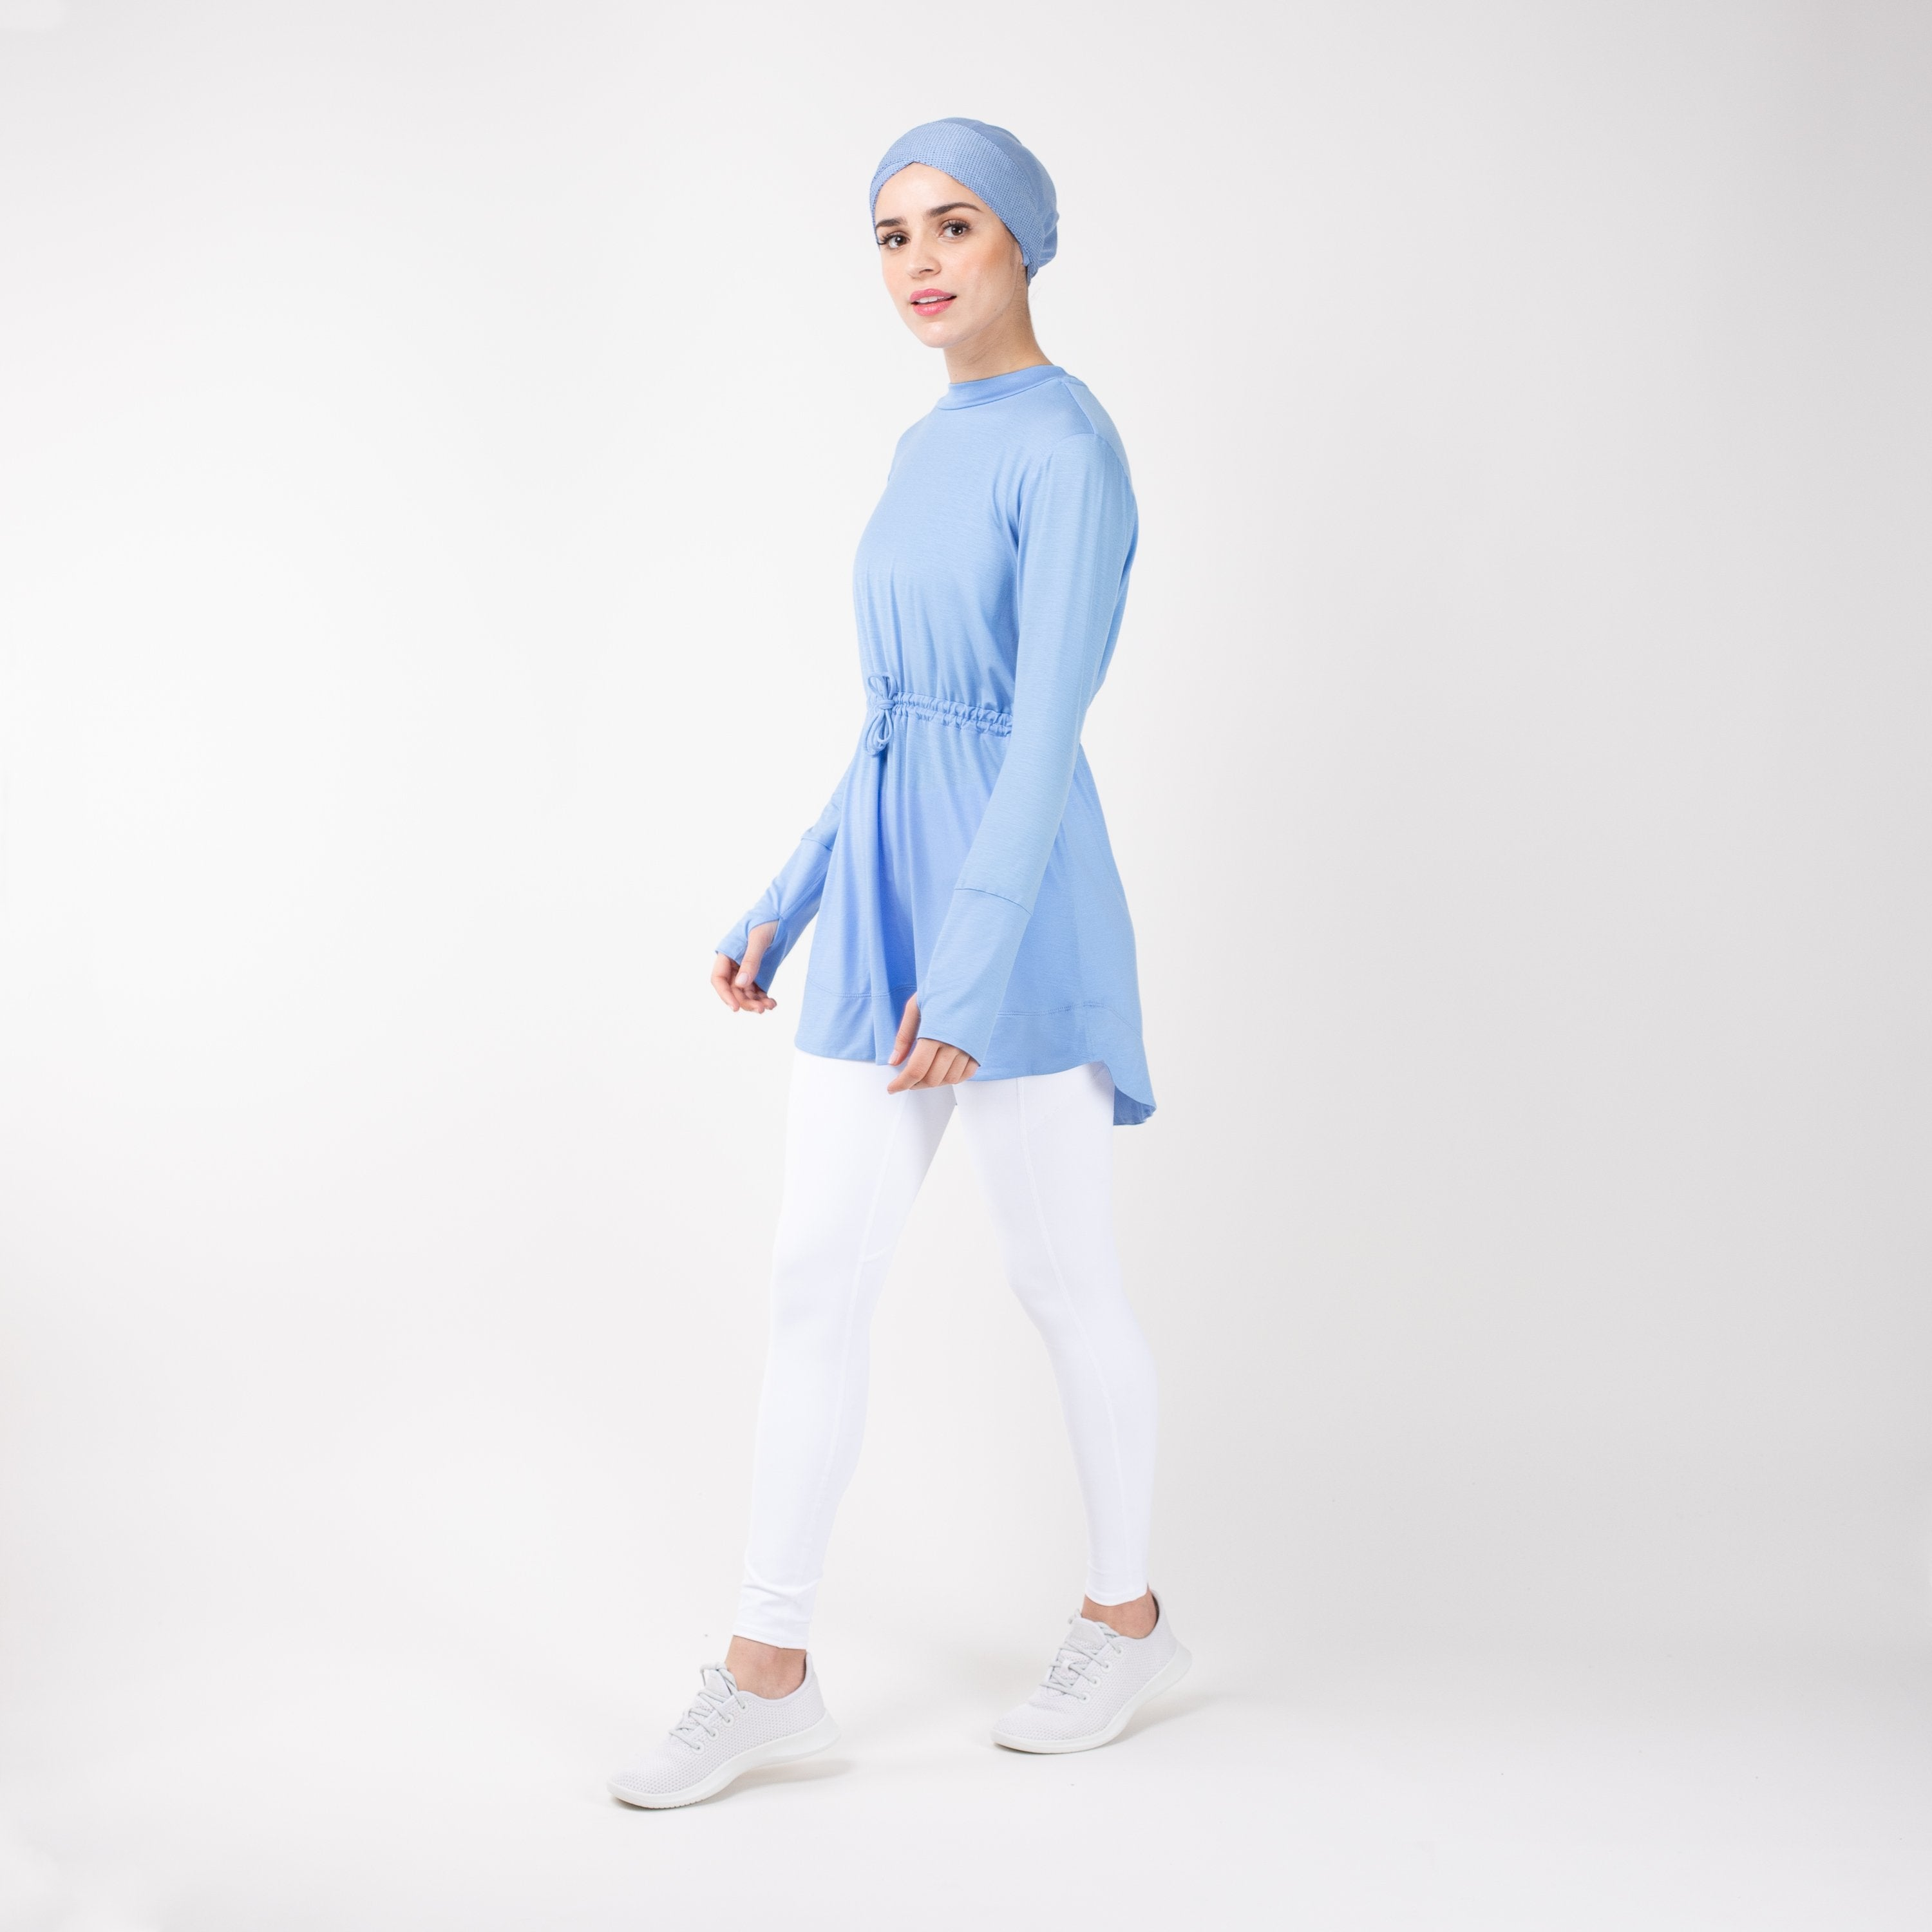 Woman walking to the left wearing the modest, sky blue HAWA drawstring tee shirt and white leggings in front of a white back drop.